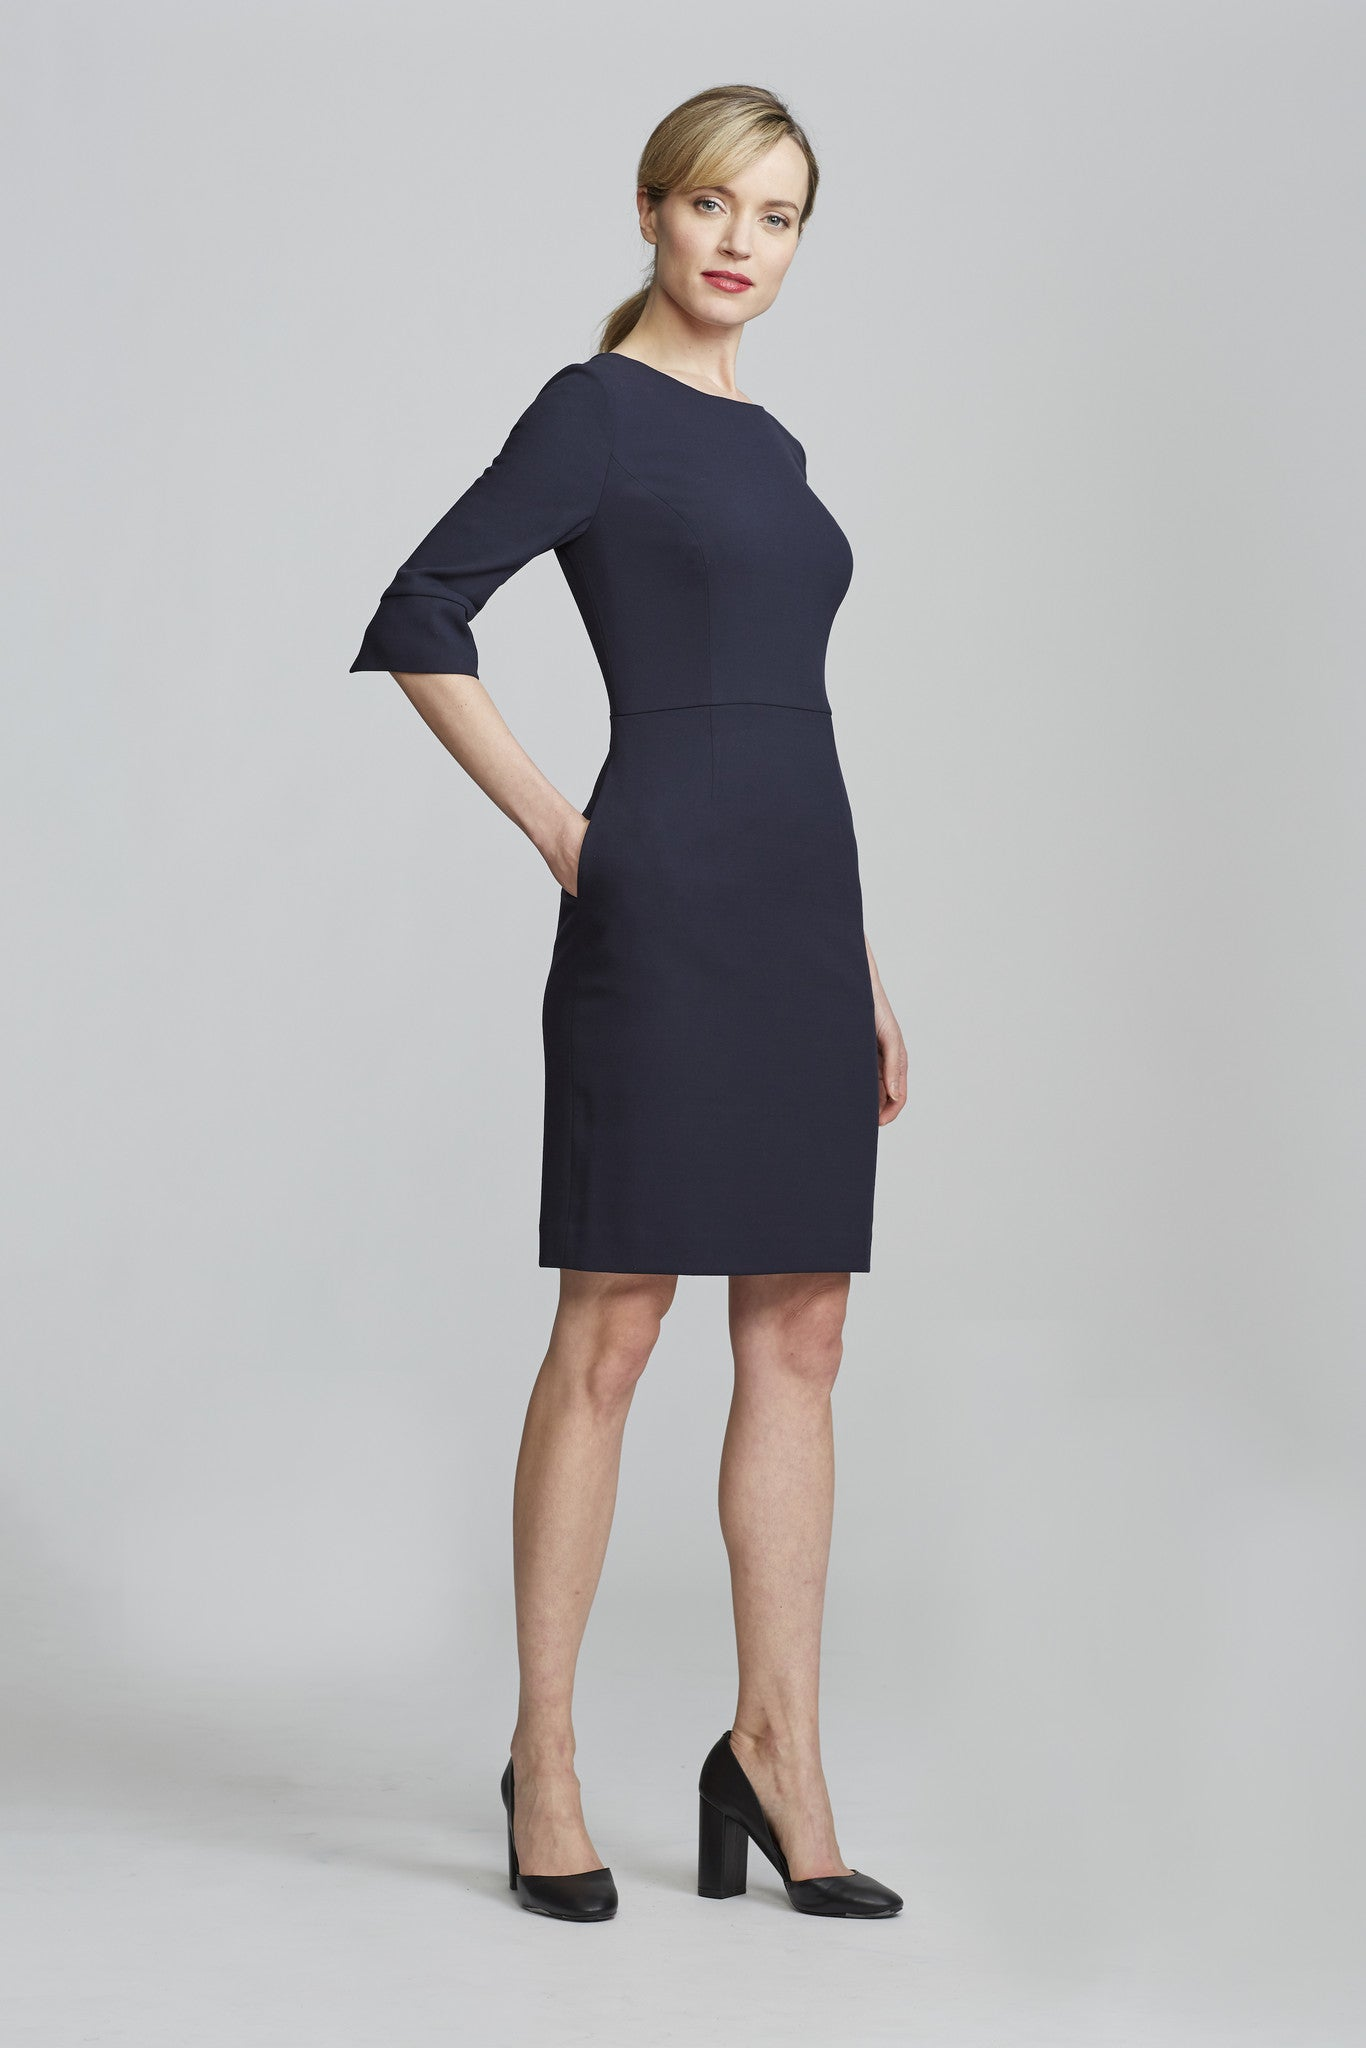 Gabrielle Dress - Navy (pre-order)